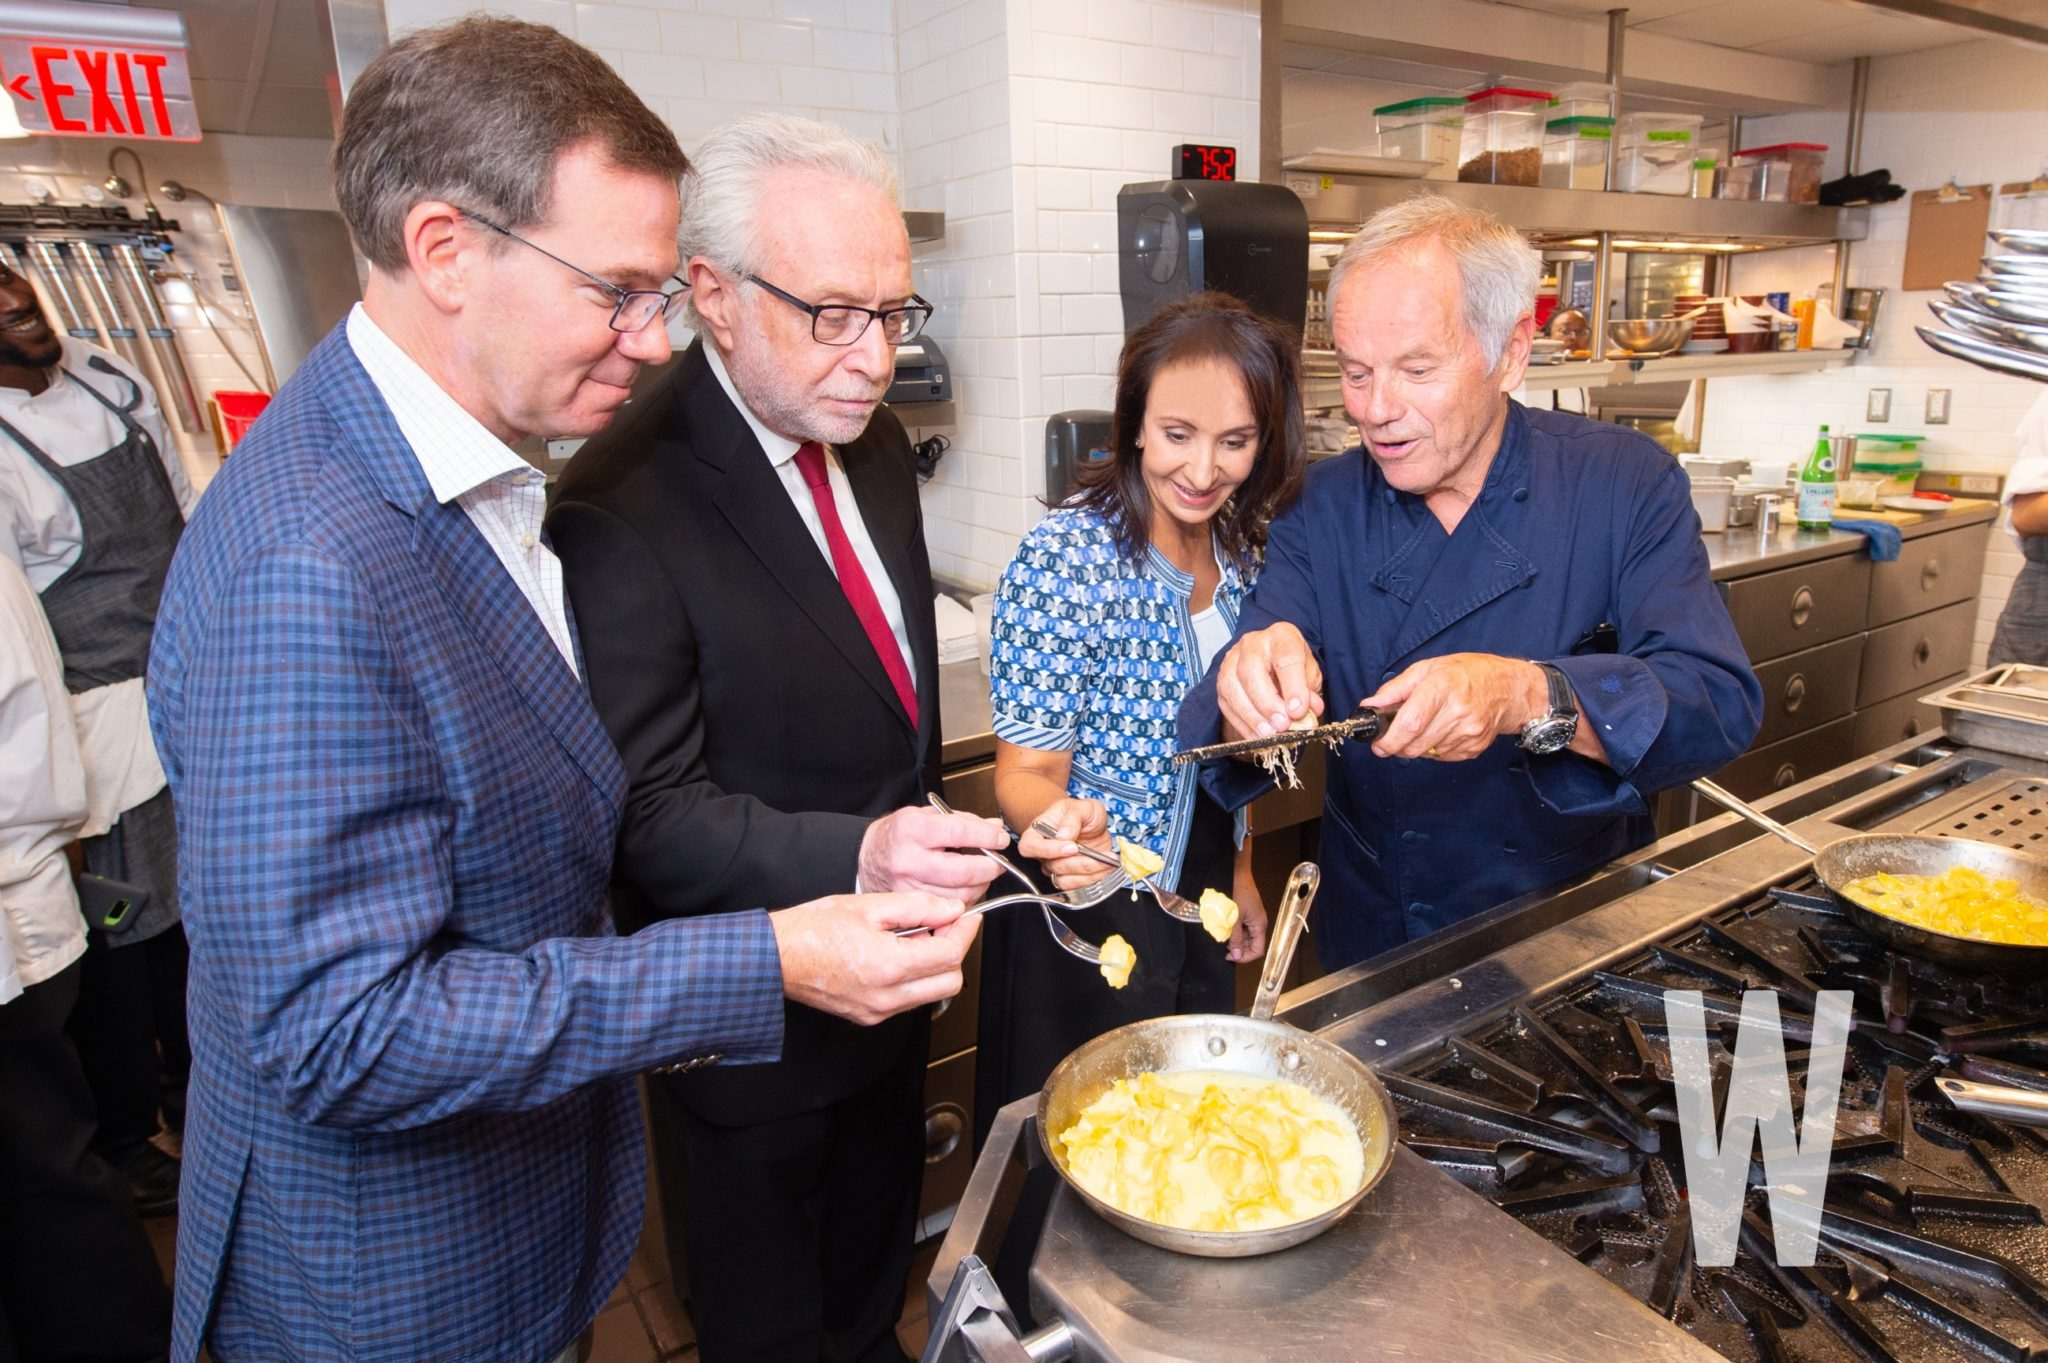 PHOTOS: Grand Opening Celebration of CUT by Wolfgang Puck